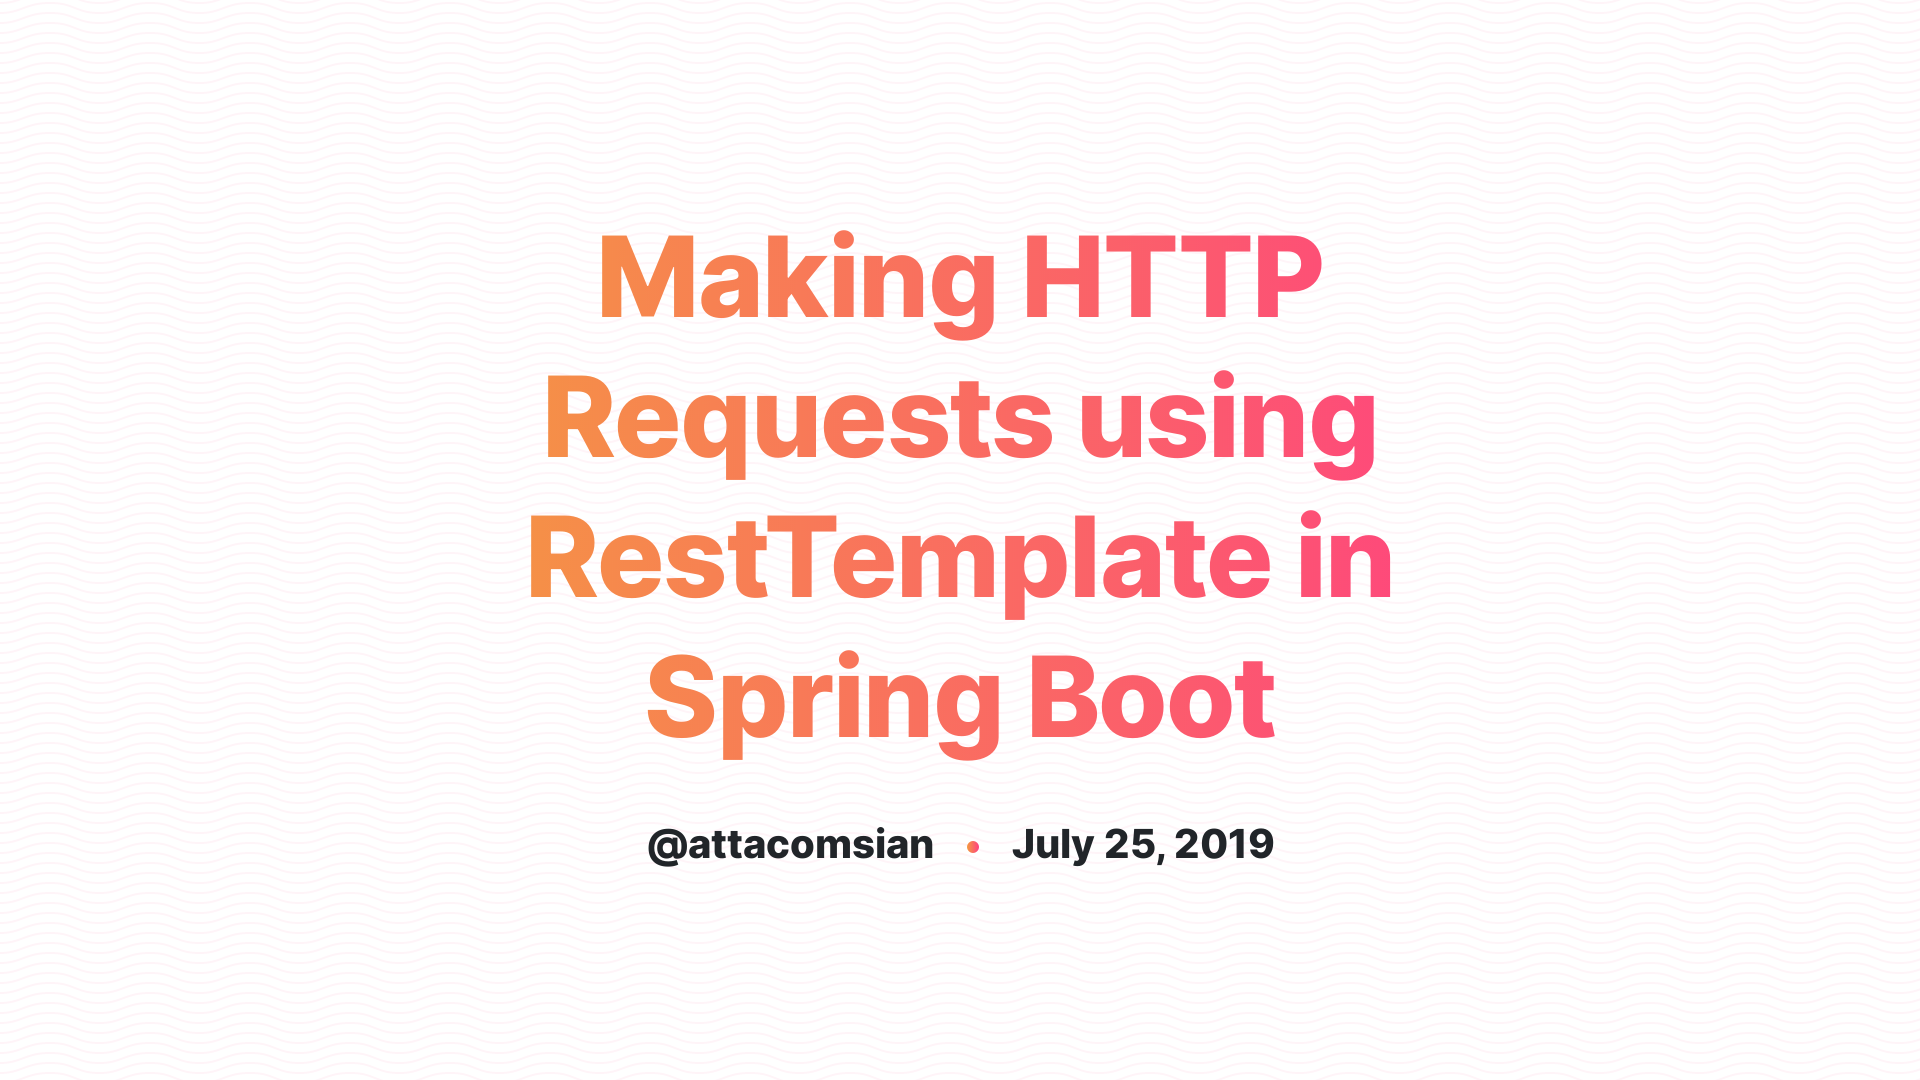 Making HTTP Requests using RestTemplate in Spring Boot